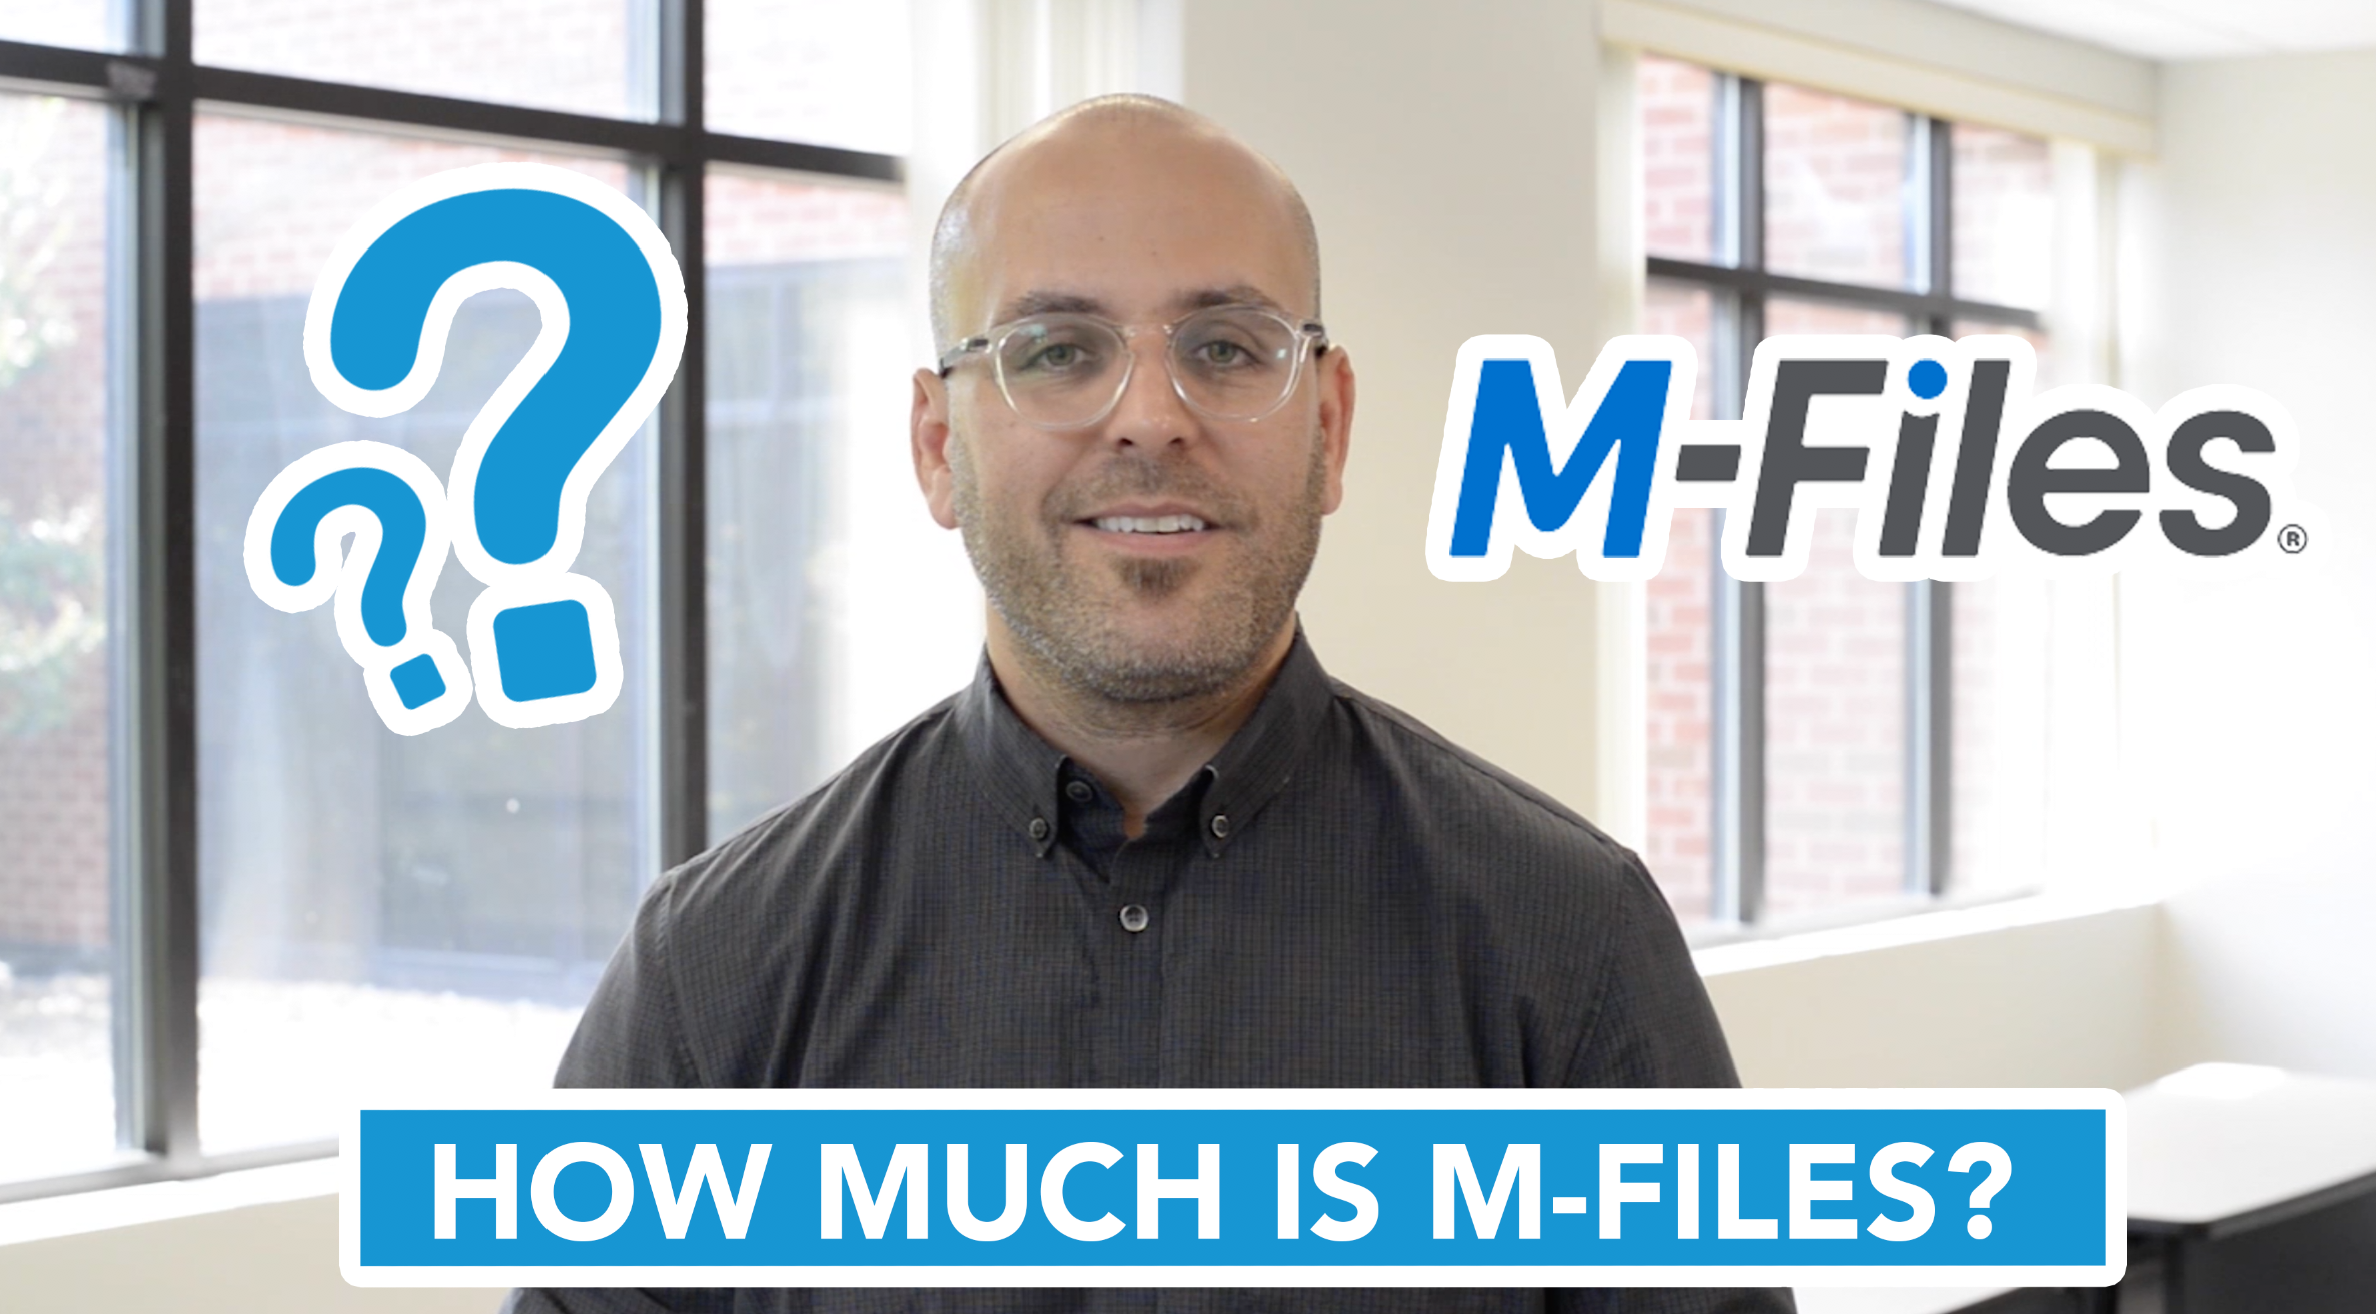 How Much is M-Files?